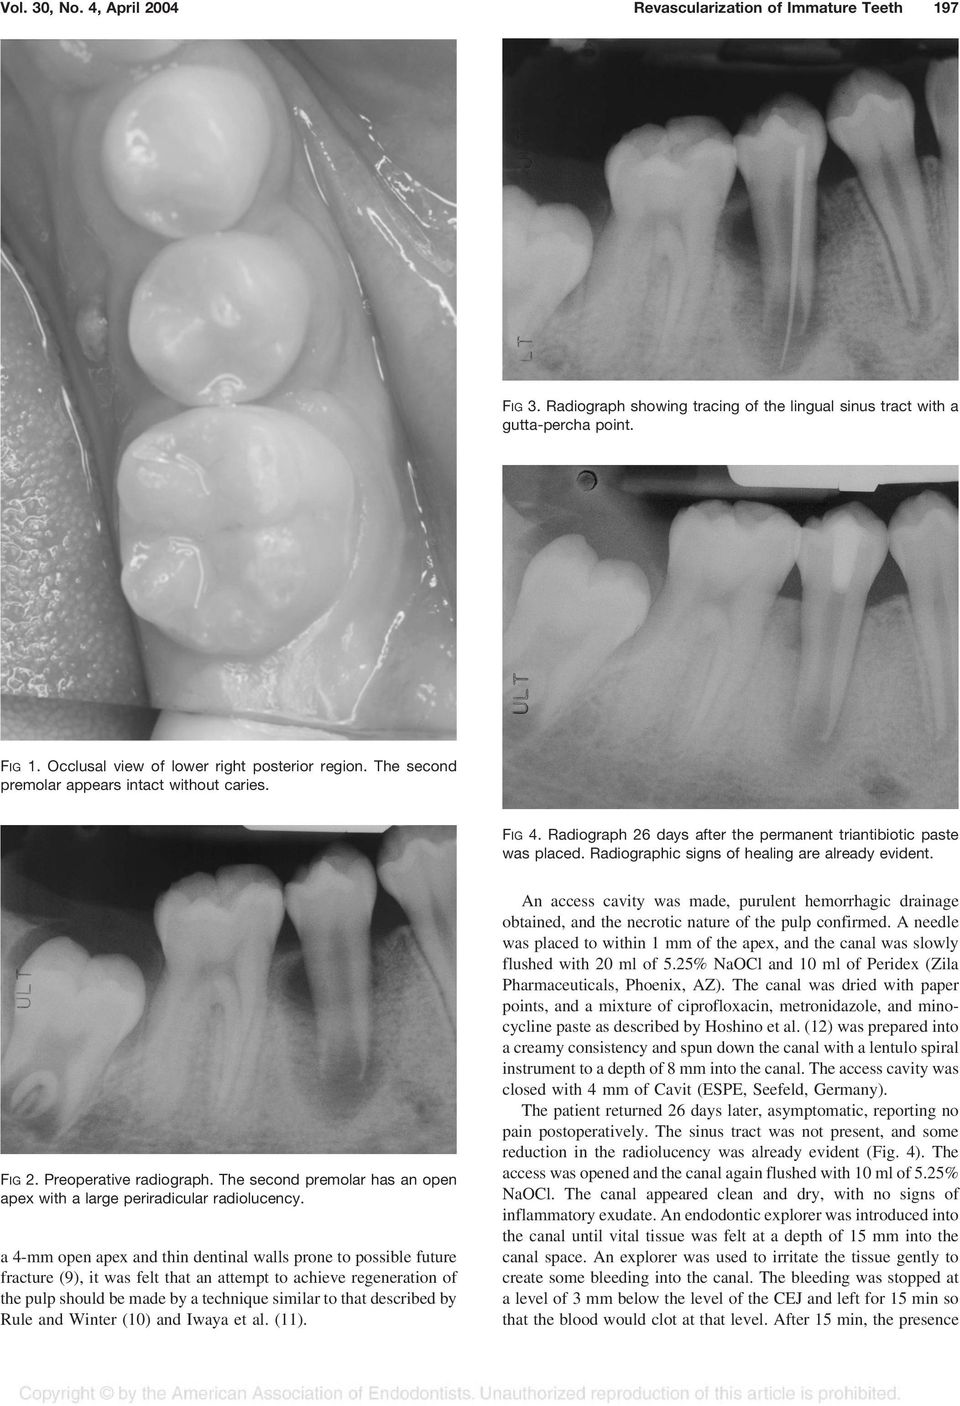 Radiographic signs of healing are already evident. FIG 2. Preoperative radiograph. The second premolar has an open apex with a large periradicular radiolucency.